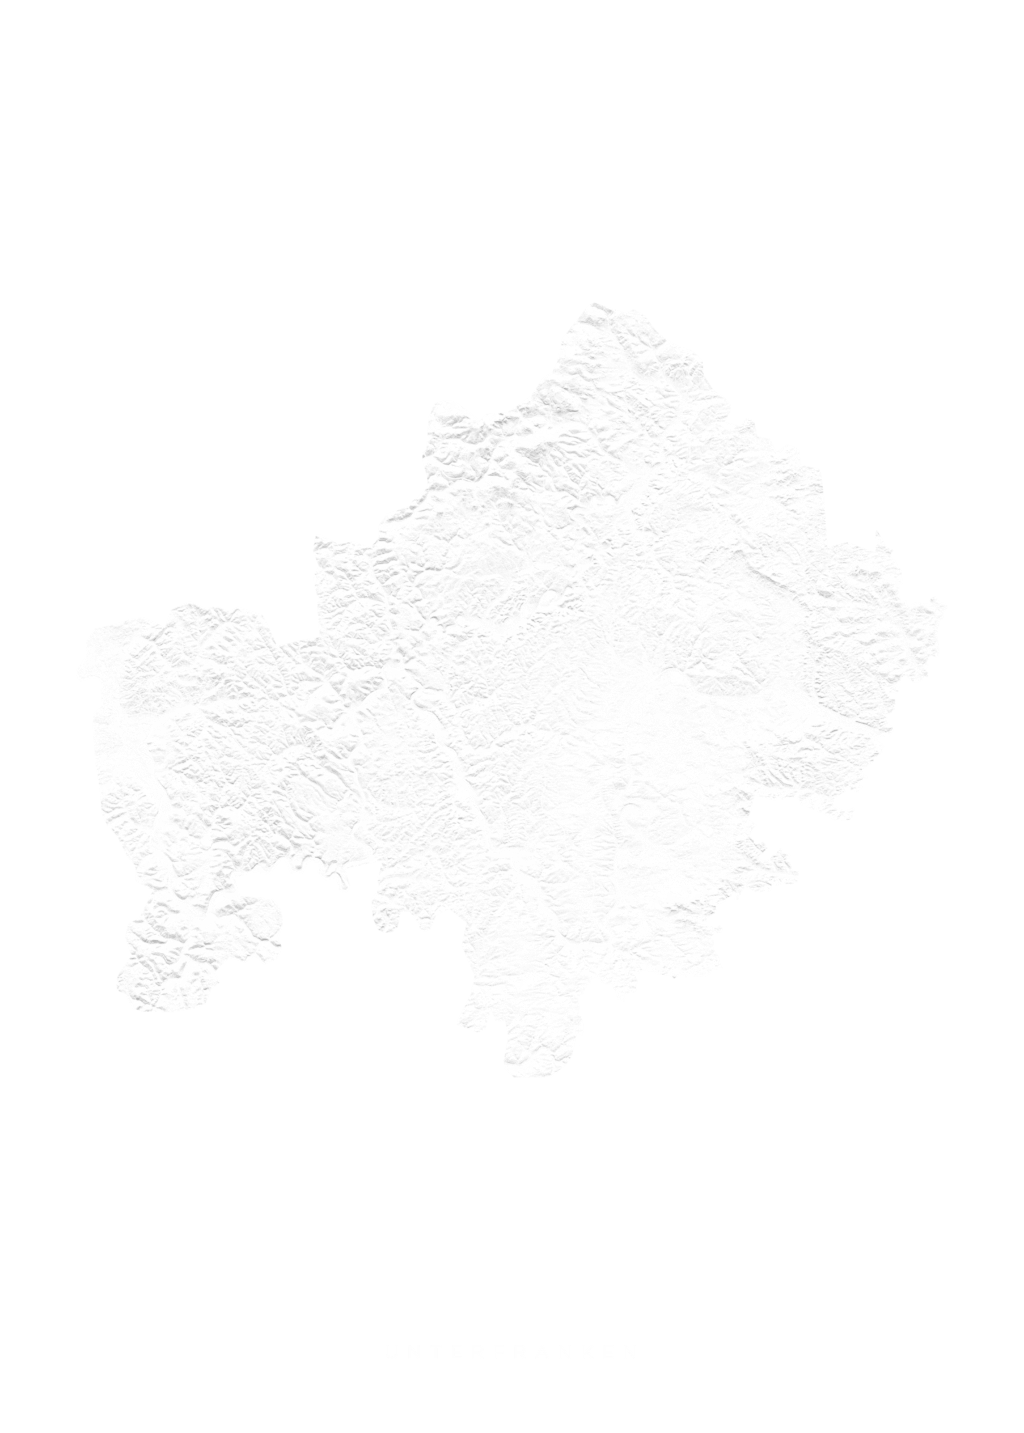 Unterfranken wall map